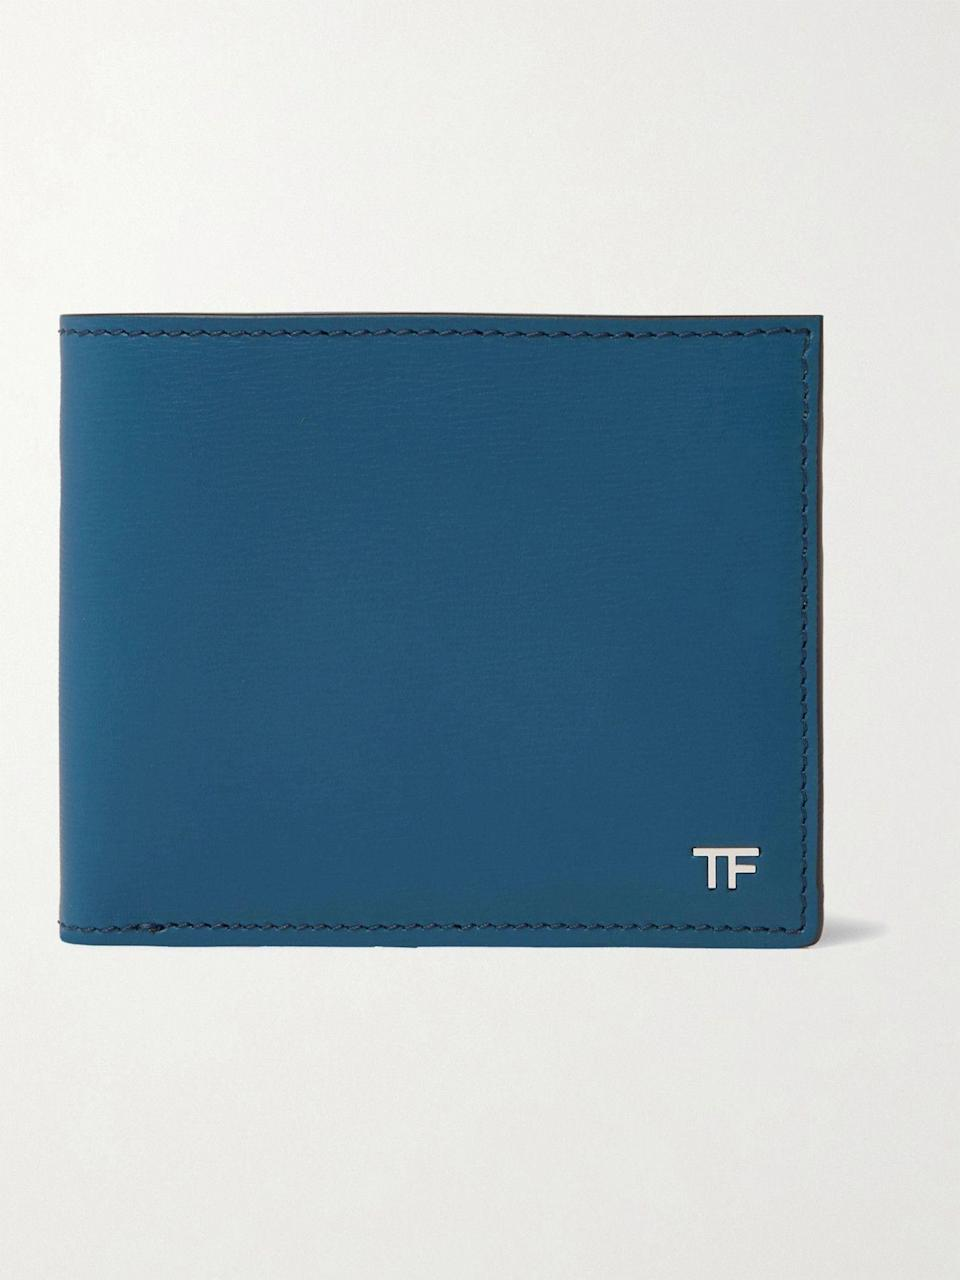 """<p><strong>TOM FORD</strong></p><p>mrporter.com</p><p><strong>$490.00</strong></p><p><a href=""""https://go.redirectingat.com?id=74968X1596630&url=https%3A%2F%2Fwww.mrporter.com%2Fen-us%2Fmens%2Fproduct%2Ftom-ford%2Faccessories%2Fbillfold-wallets%2Flogo-appliqued-textured-leather-billfold-wallet%2F46353151655520276&sref=https%3A%2F%2Fwww.esquire.com%2Fstyle%2Fmens-accessories%2Fg35924710%2Fmens-luxury-wallets%2F"""" rel=""""nofollow noopener"""" target=""""_blank"""" data-ylk=""""slk:Shop Now"""" class=""""link rapid-noclick-resp"""">Shop Now</a></p><p>Even Tom Ford gets the blues. (And we're all the luckier for it.)</p>"""